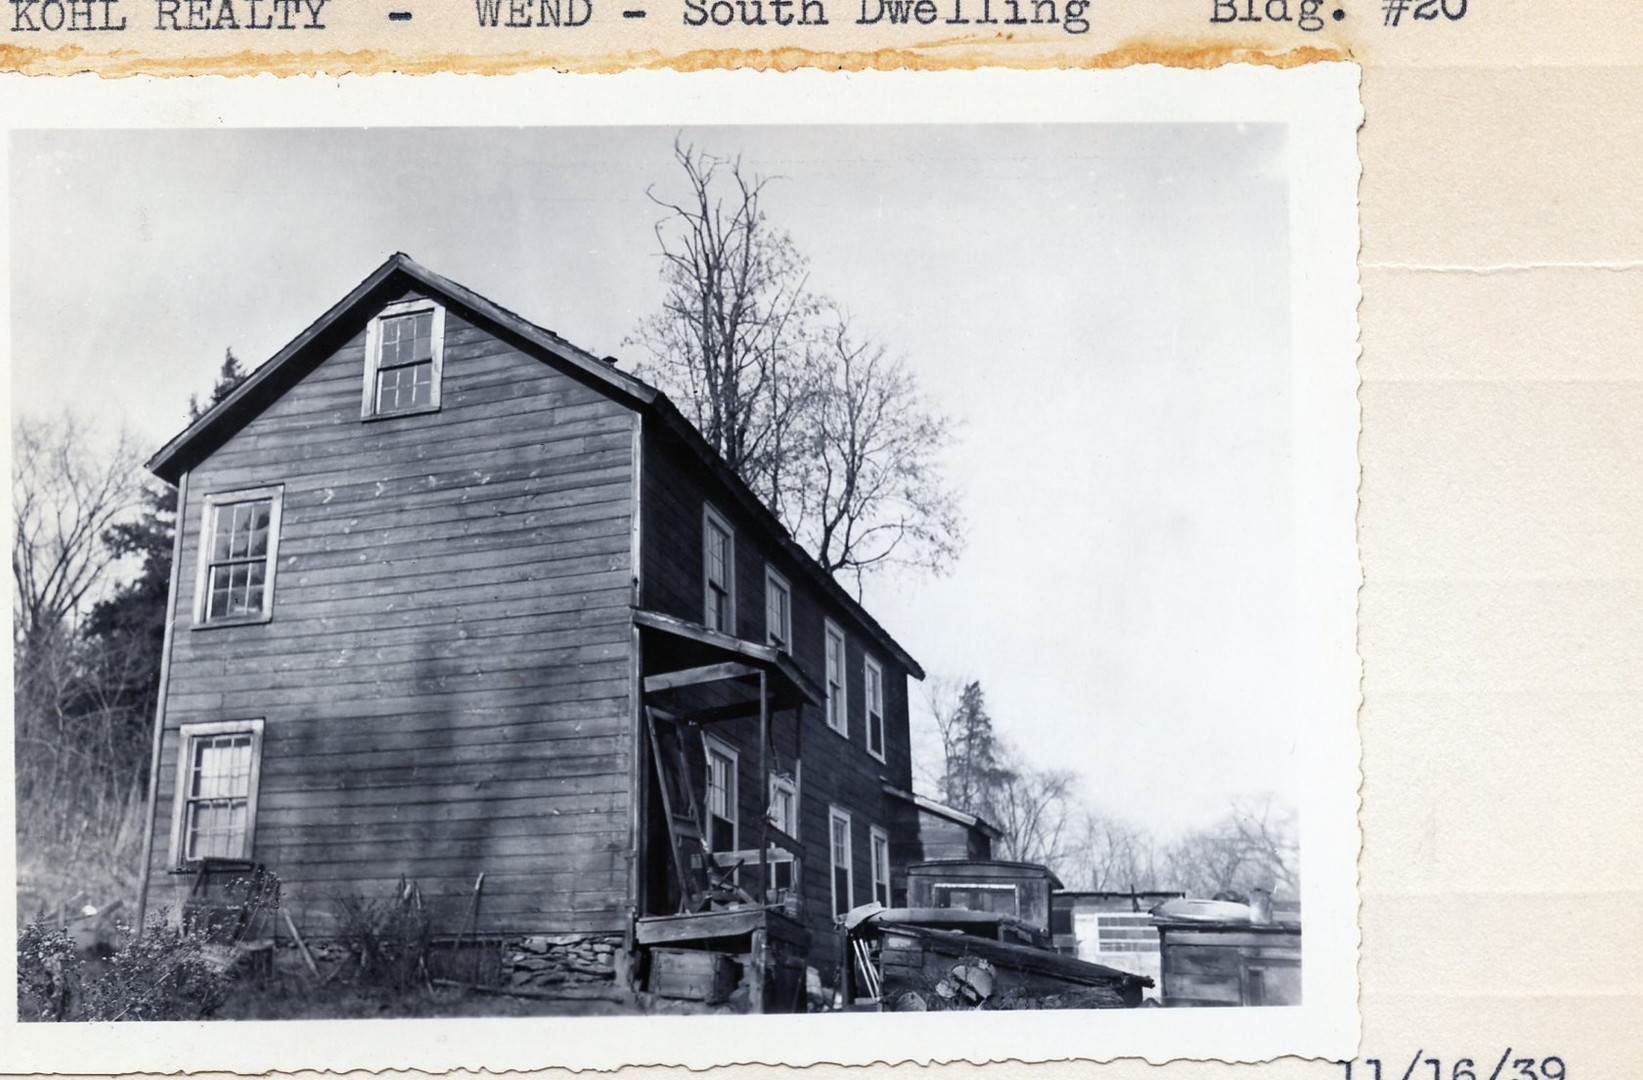 Kohl Realty - Wend - South Dwelling Bldg #20, 11/16/39